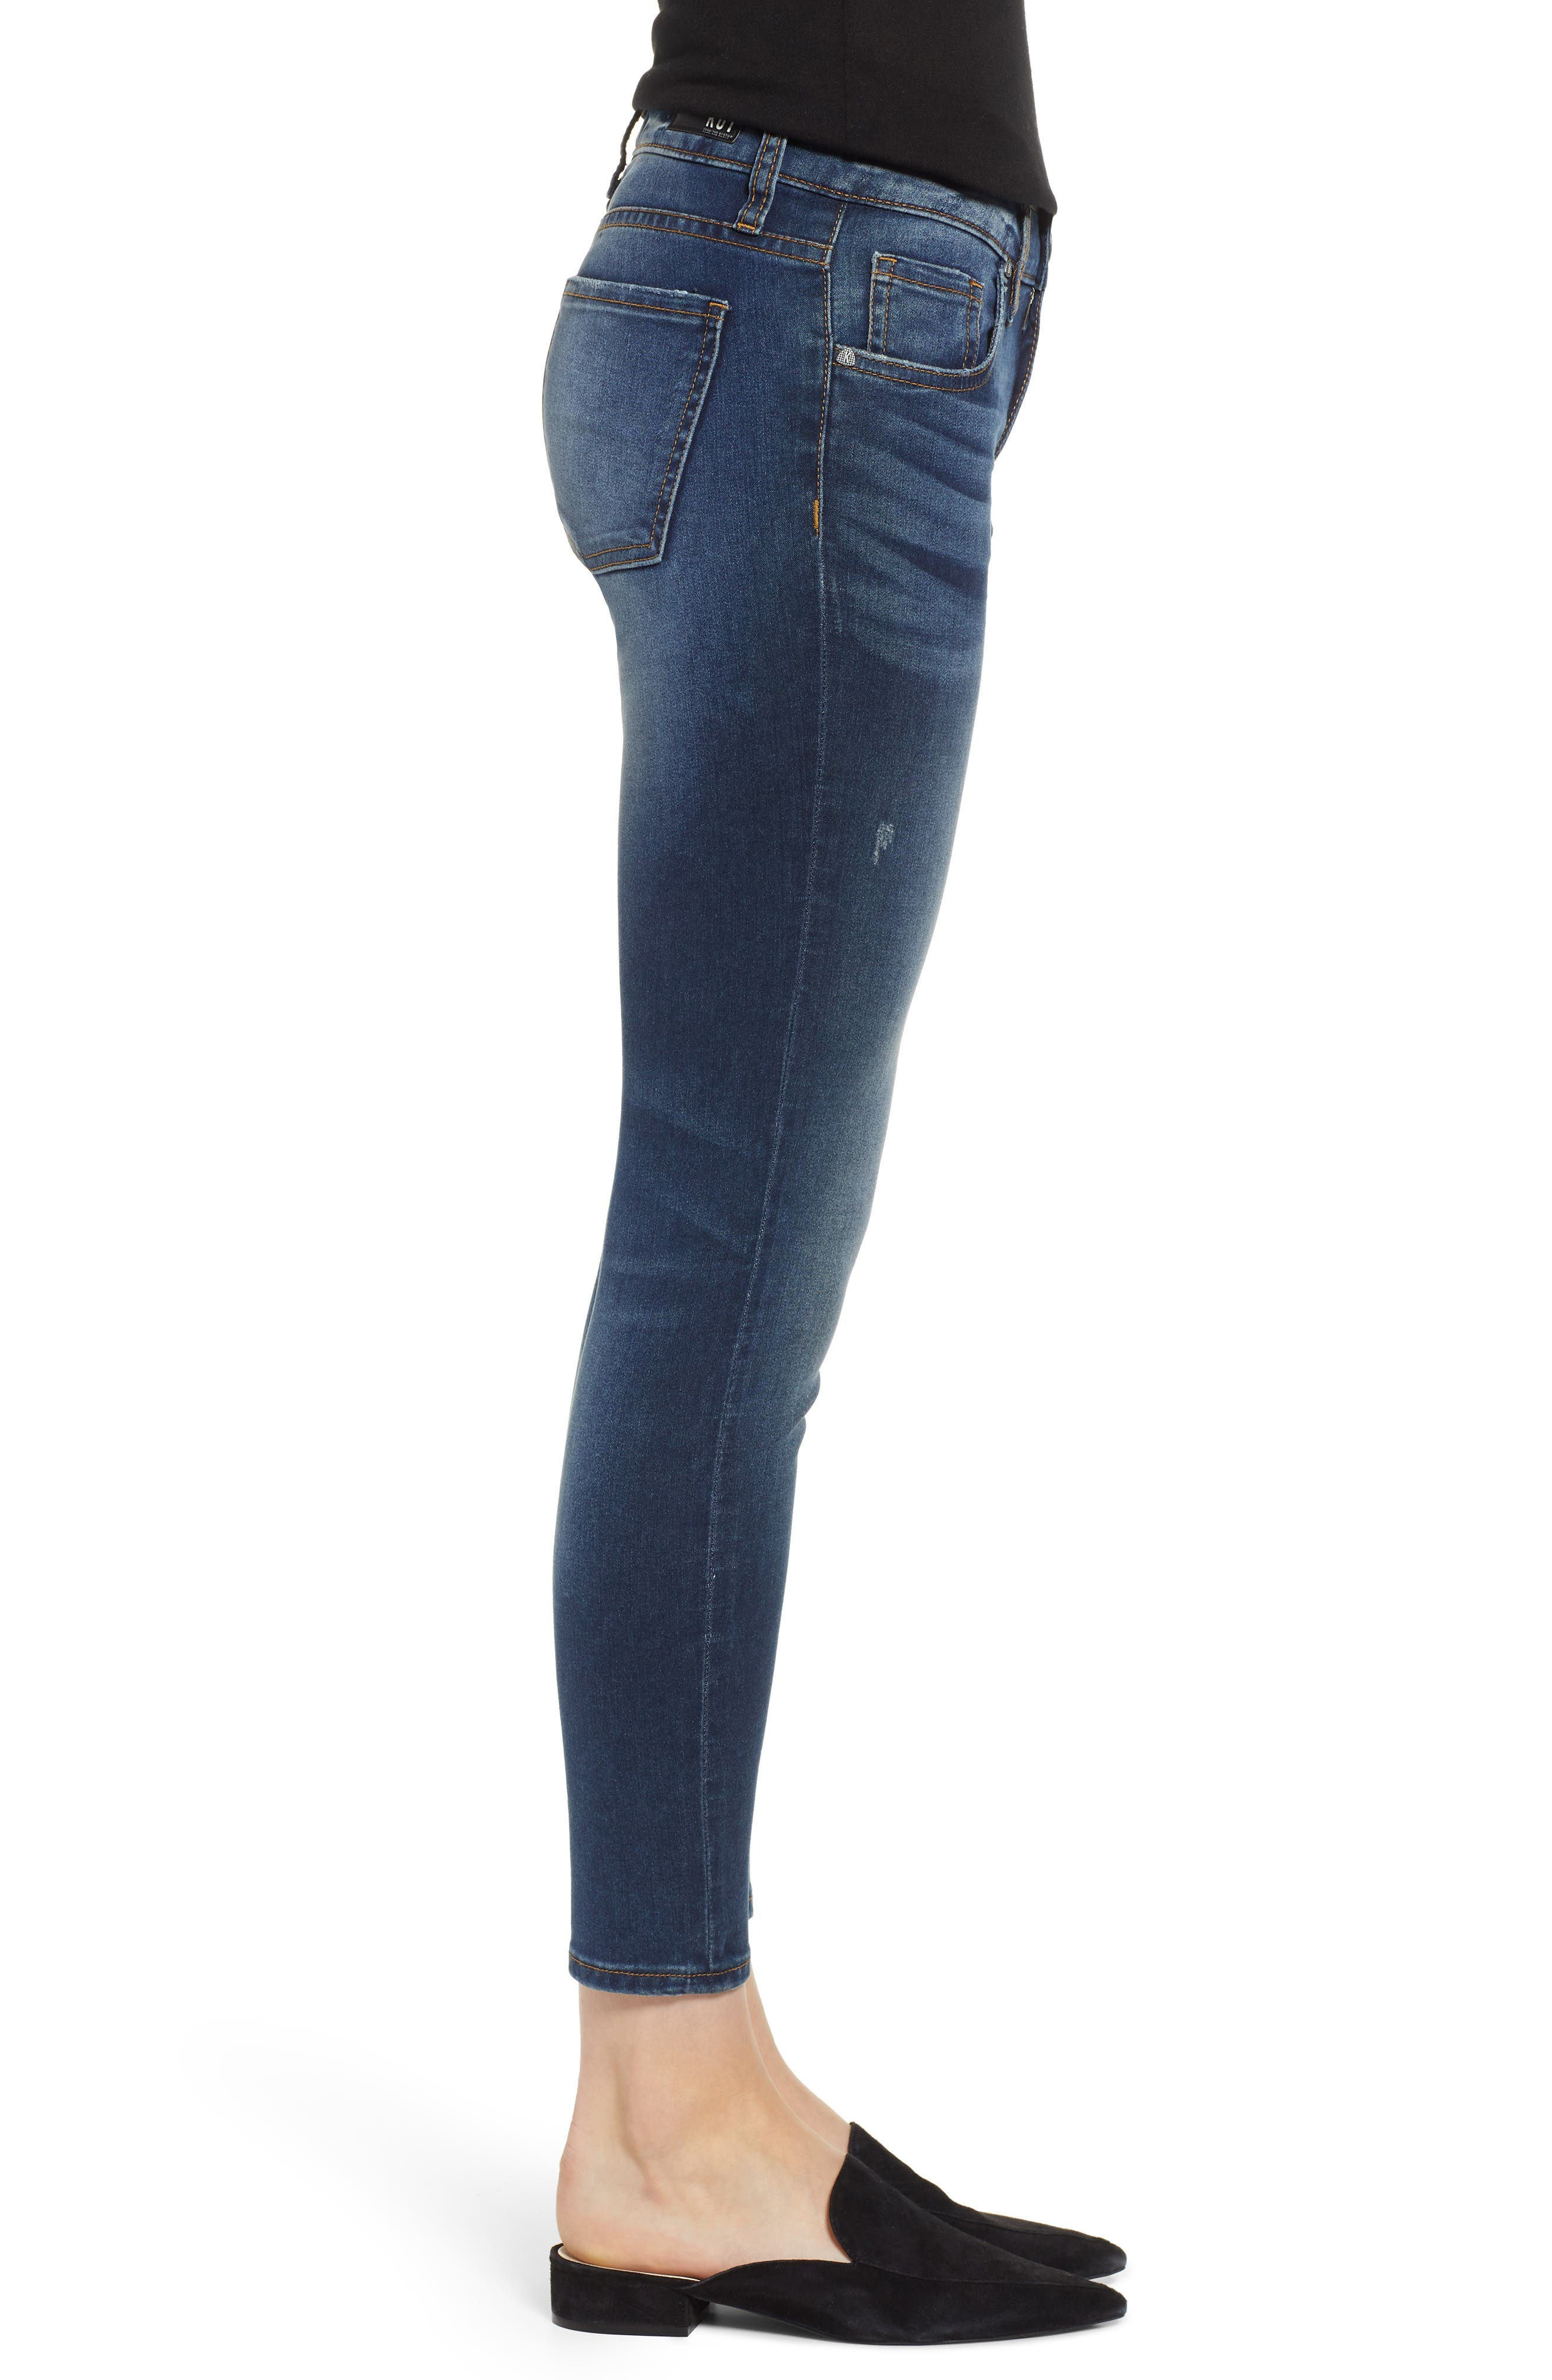 KUT FROM THE KLOTH, KUT From The Koth Donna Ankle Skinny Jeans, Alternate thumbnail 4, color, 400